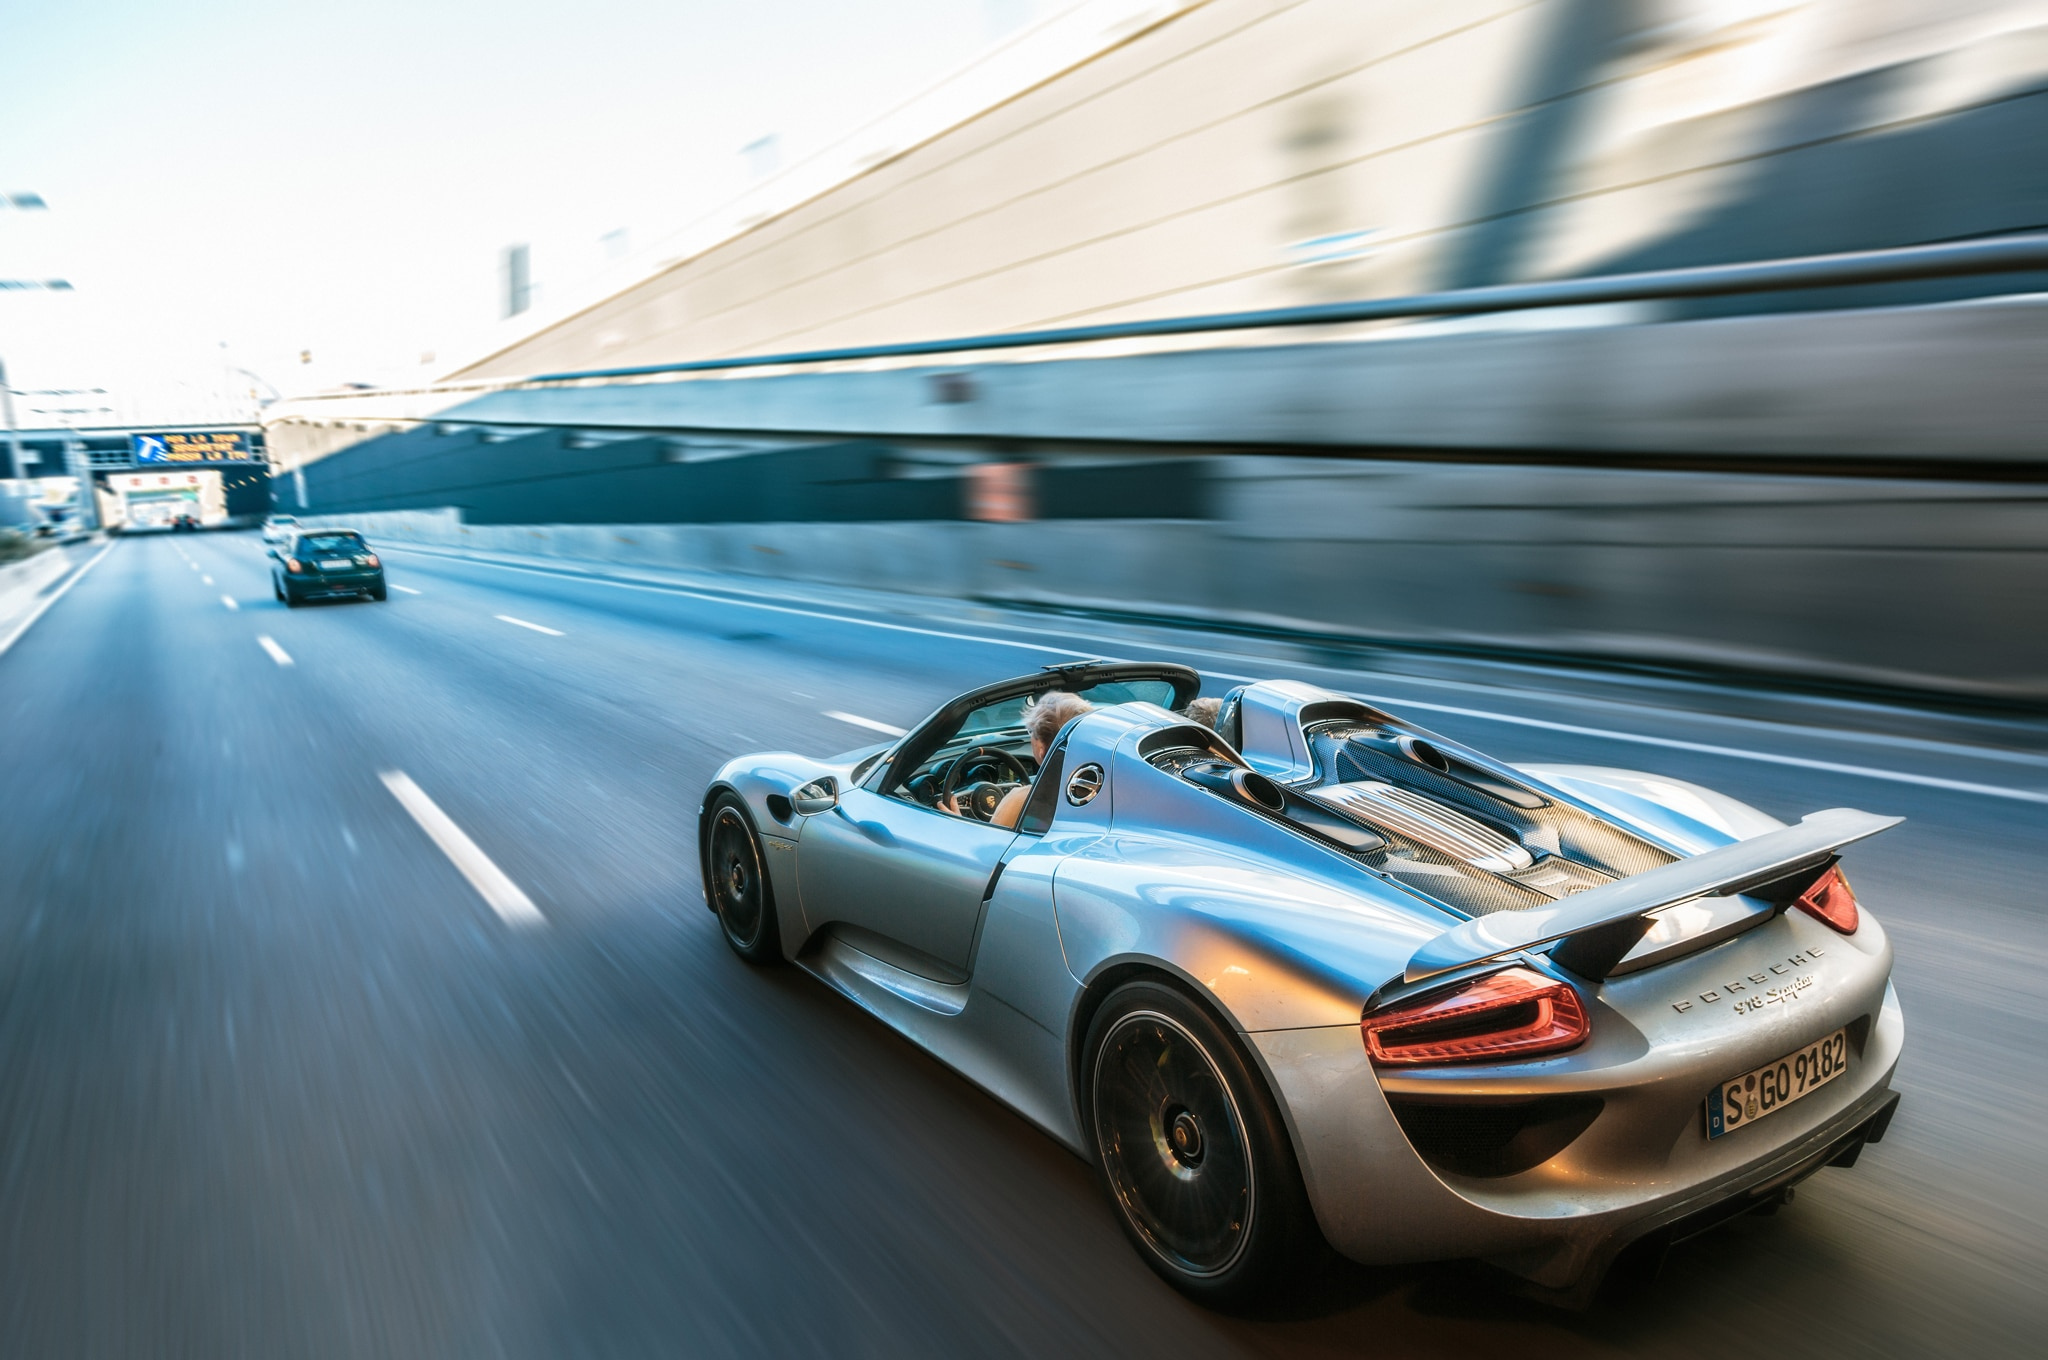 2014-Porsche-918-Spyder-in-Germany-rear-three-quarters-in-motion Marvelous Porsche 918 Spyder Mark Webber Cars Trend